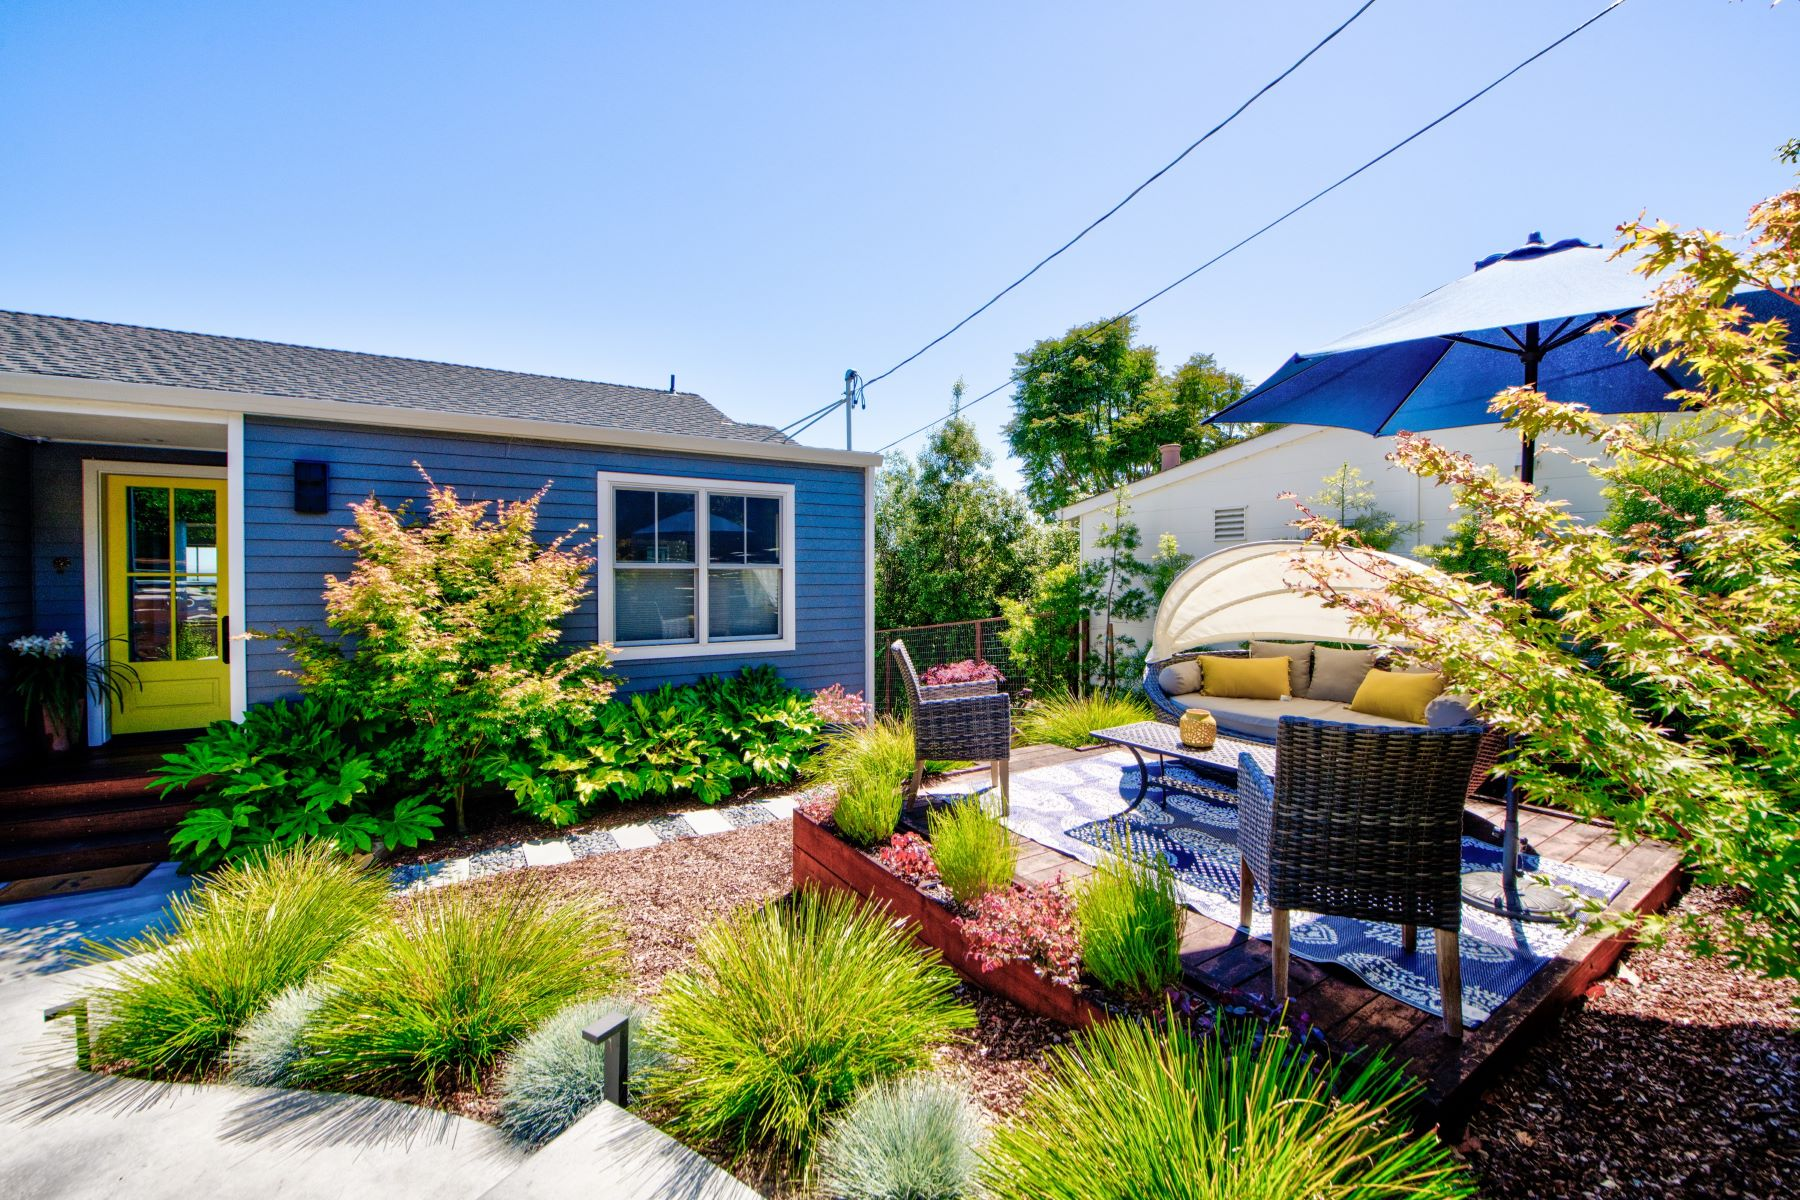 Single Family Homes for Sale at Essence of Chic Coastal Living! 275 Belvedere Ave Stinson Beach, California 94970 United States